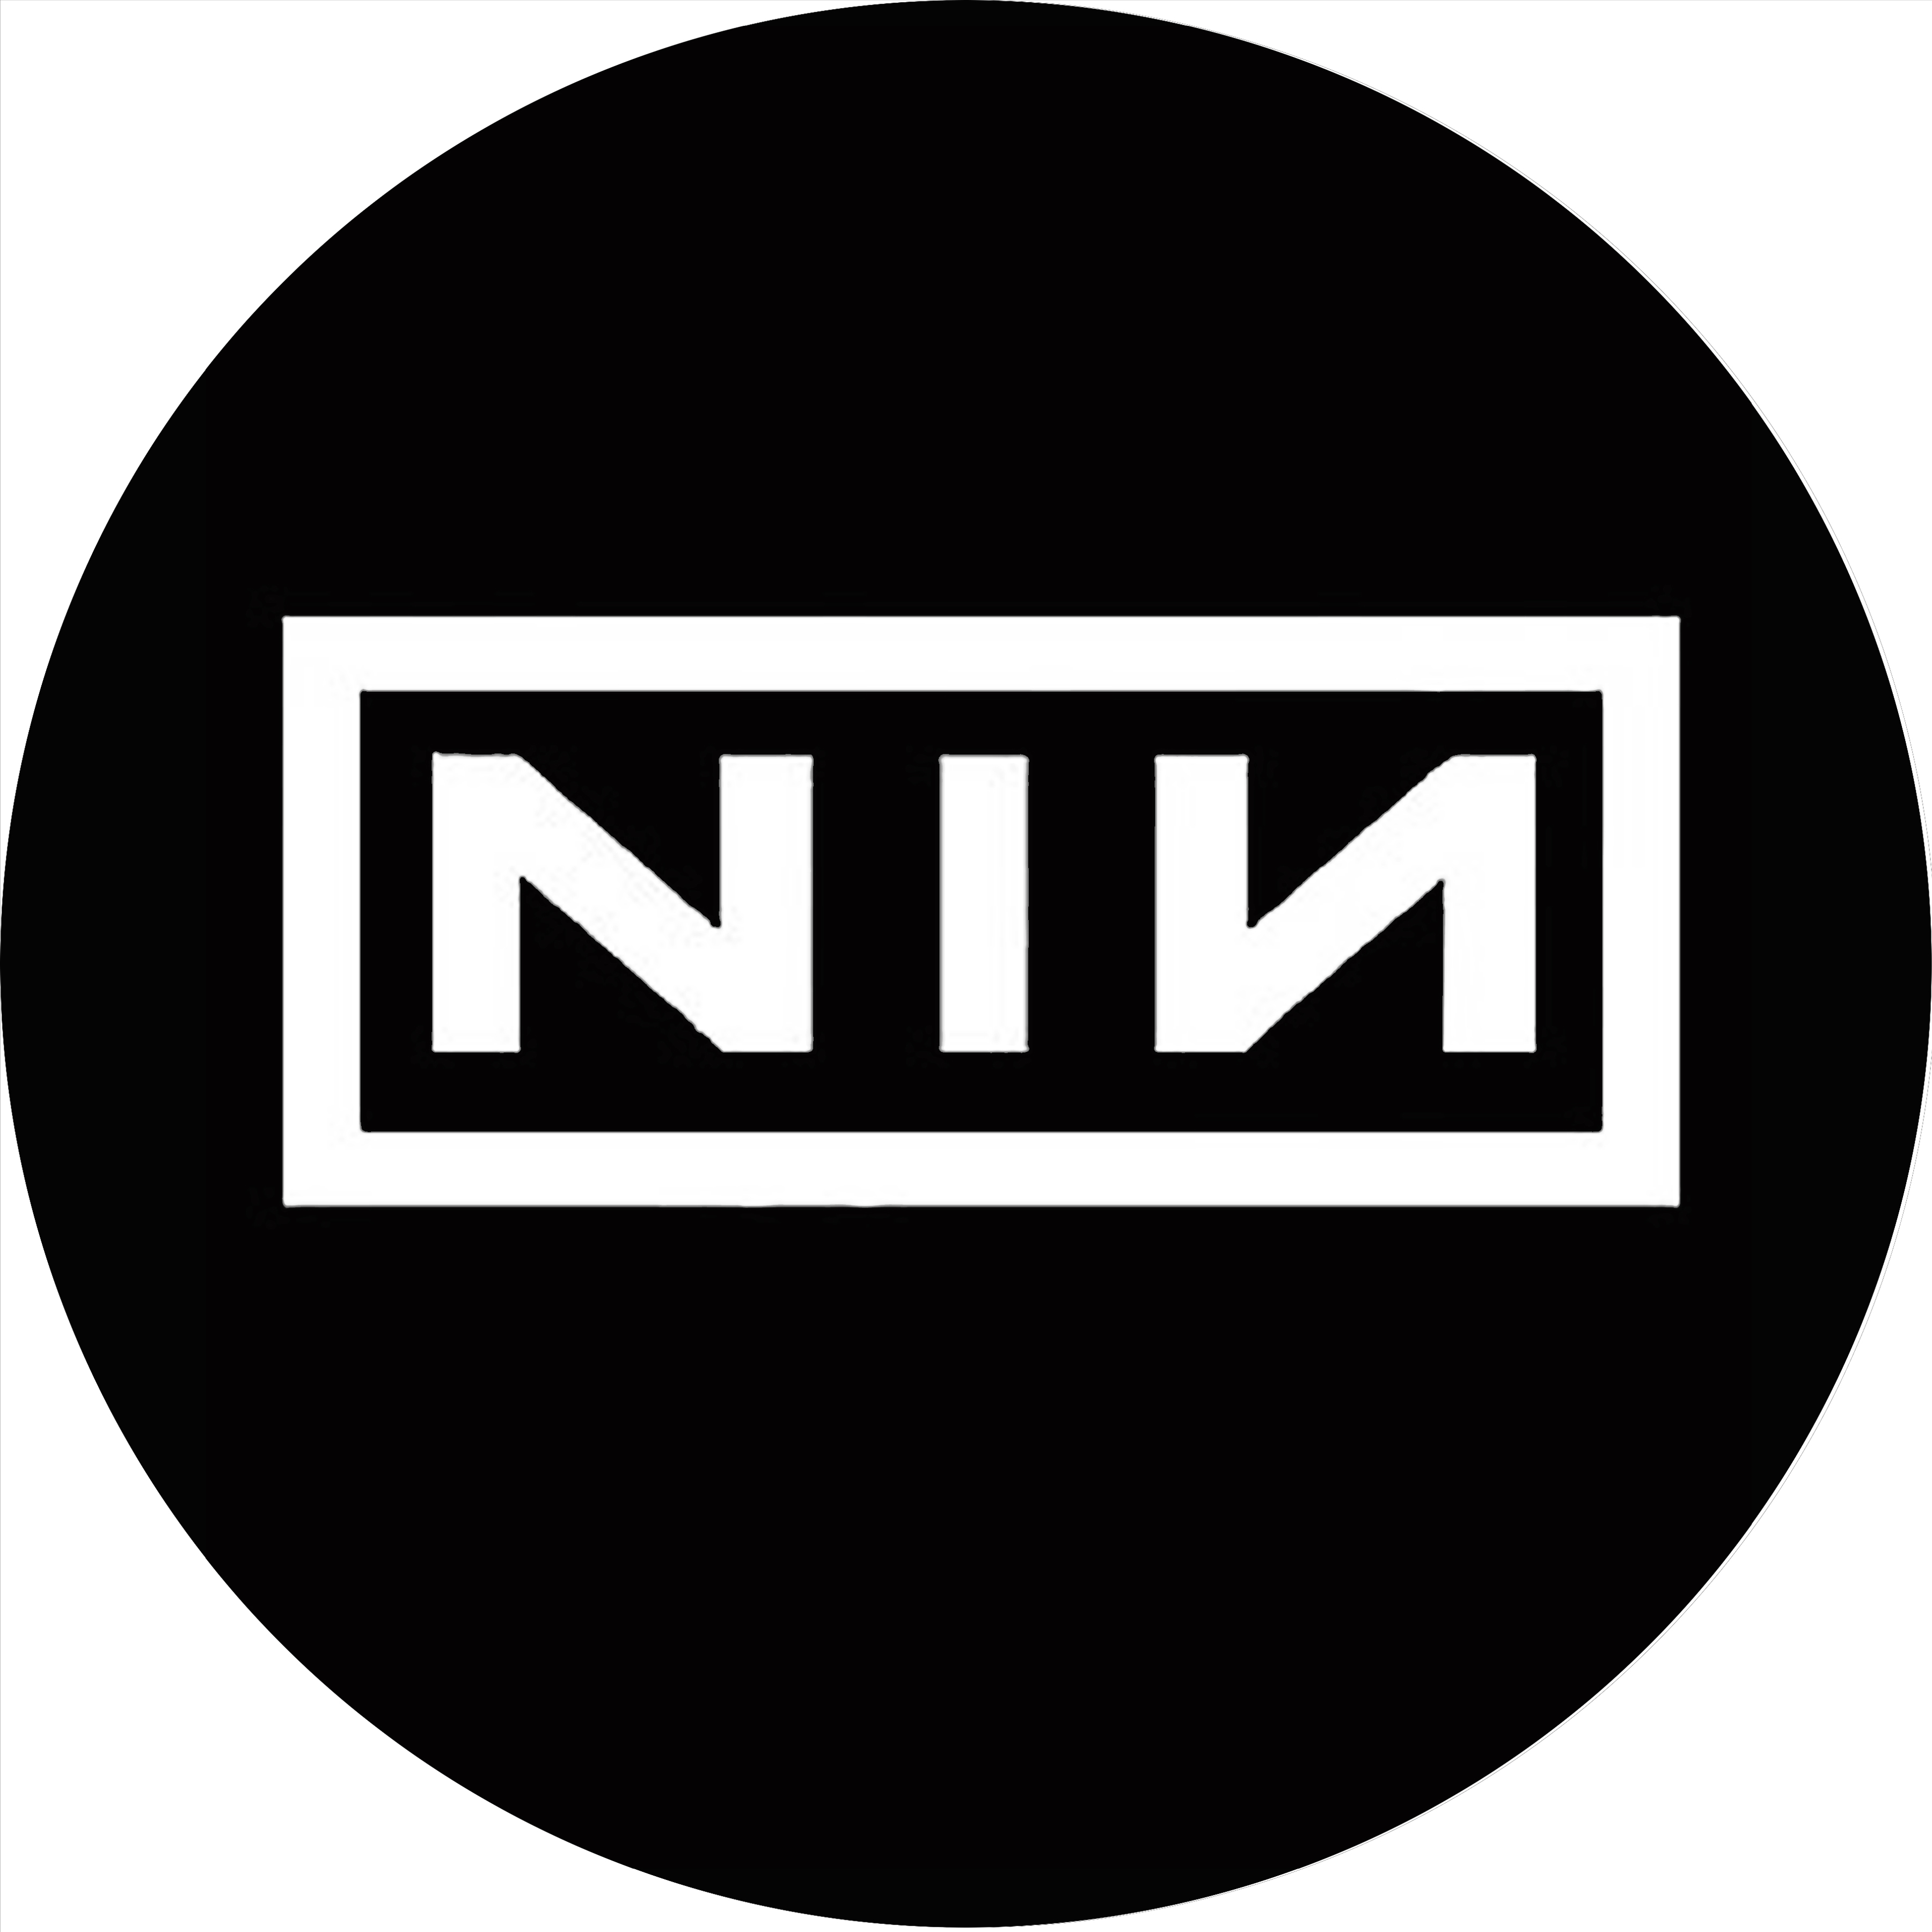 Nine Inch Nails/LOGO SLIPMAT